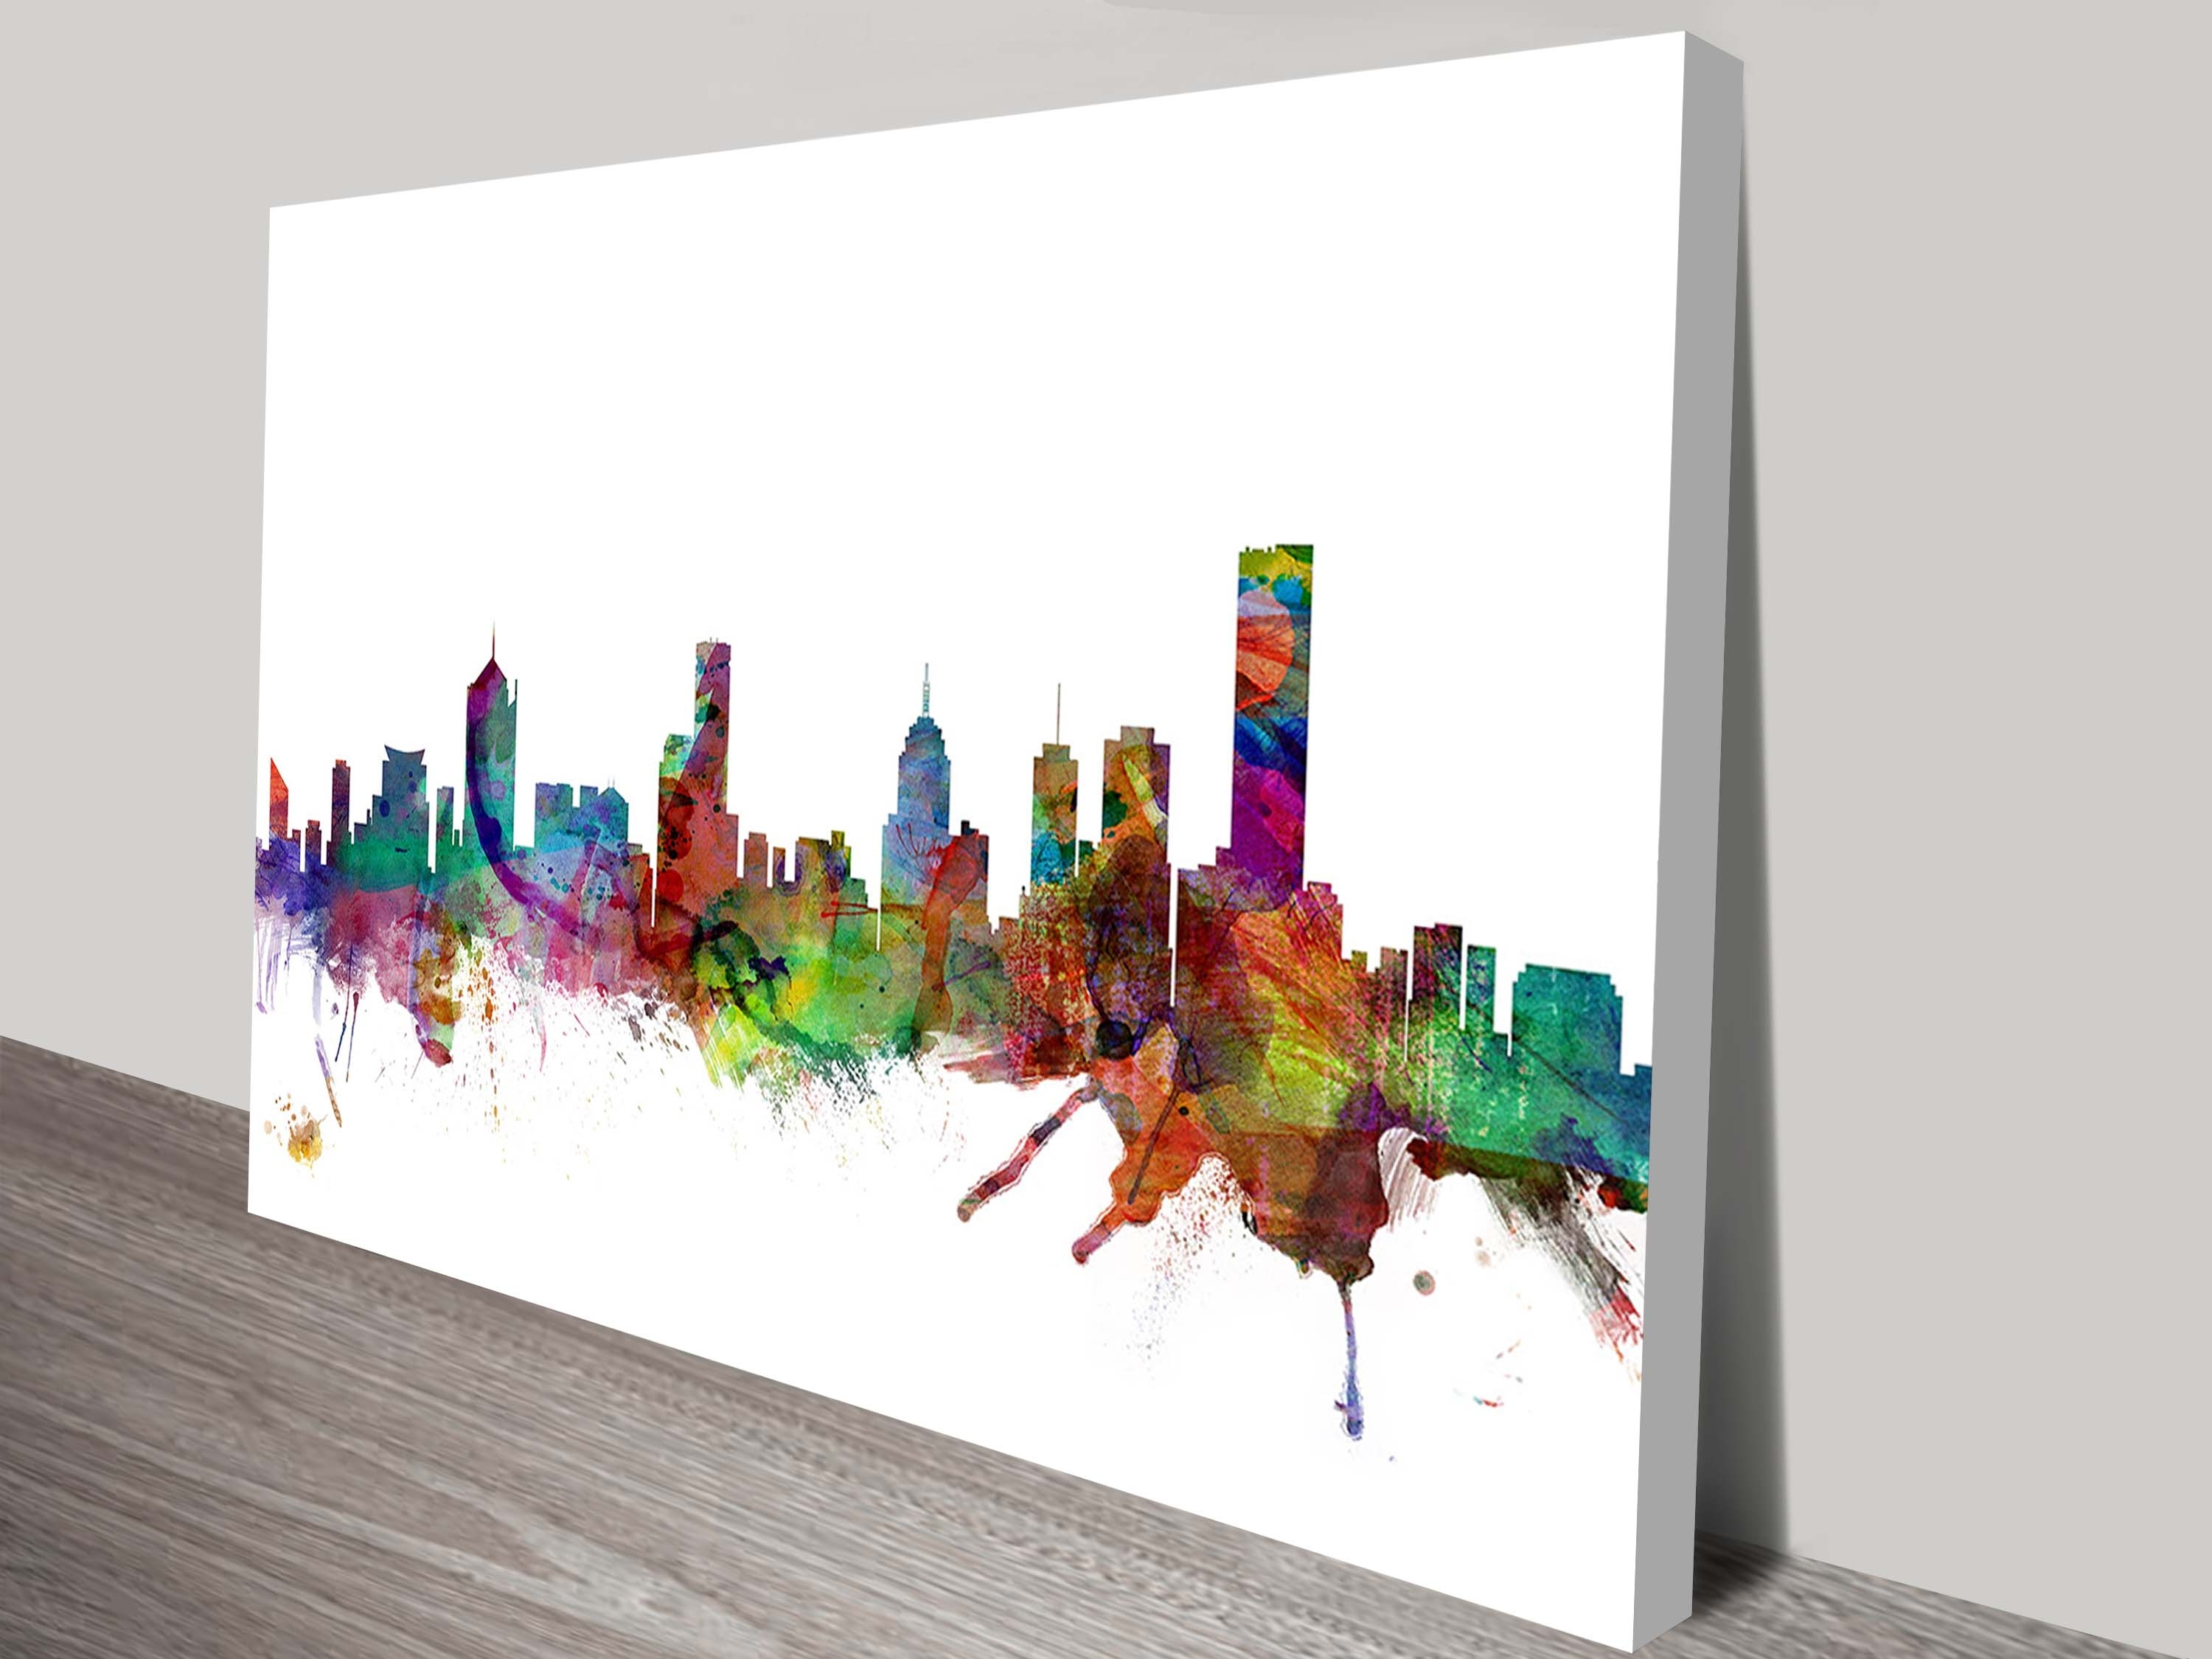 Watercolour Melbourne Skyline Artworkmichael Tompsett Regarding Newest Canvas Wall Art In Melbourne (View 15 of 15)